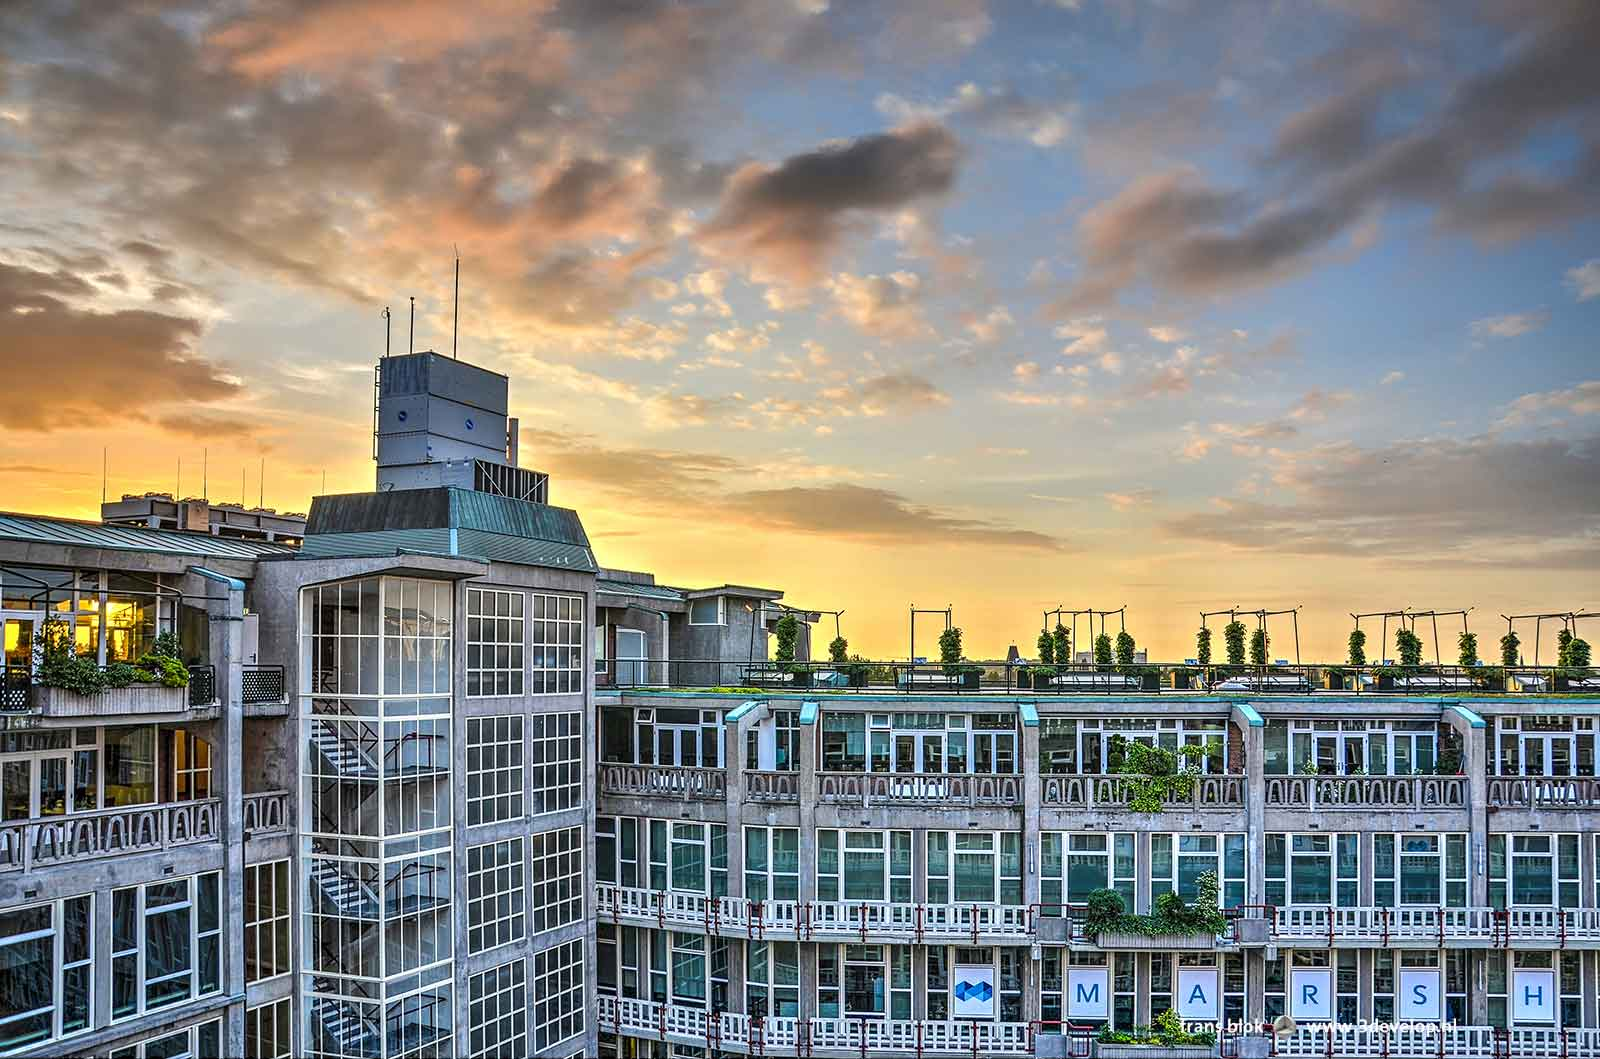 One of the courtyards of Maaskant's Groothandelsgebouw in Rotterdam during sunset